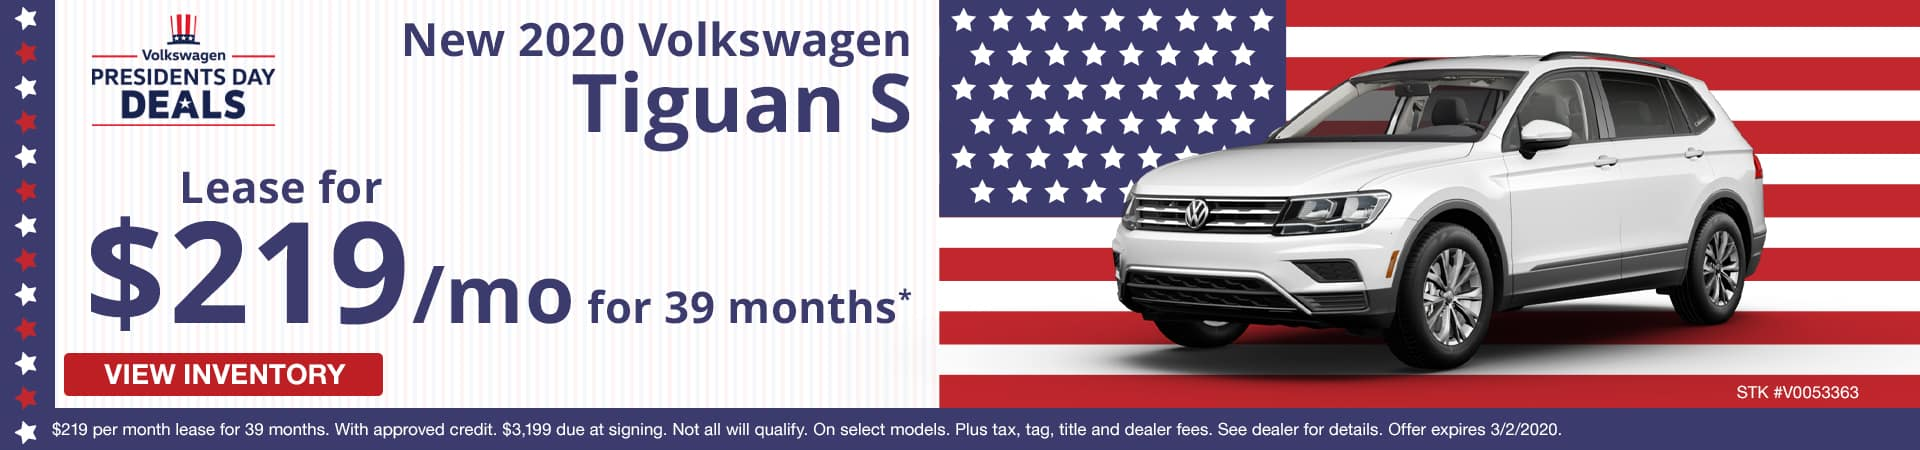 Lease a new 2020 Volkswagen Tiguan S for $219 a month in Murfreesboro TN